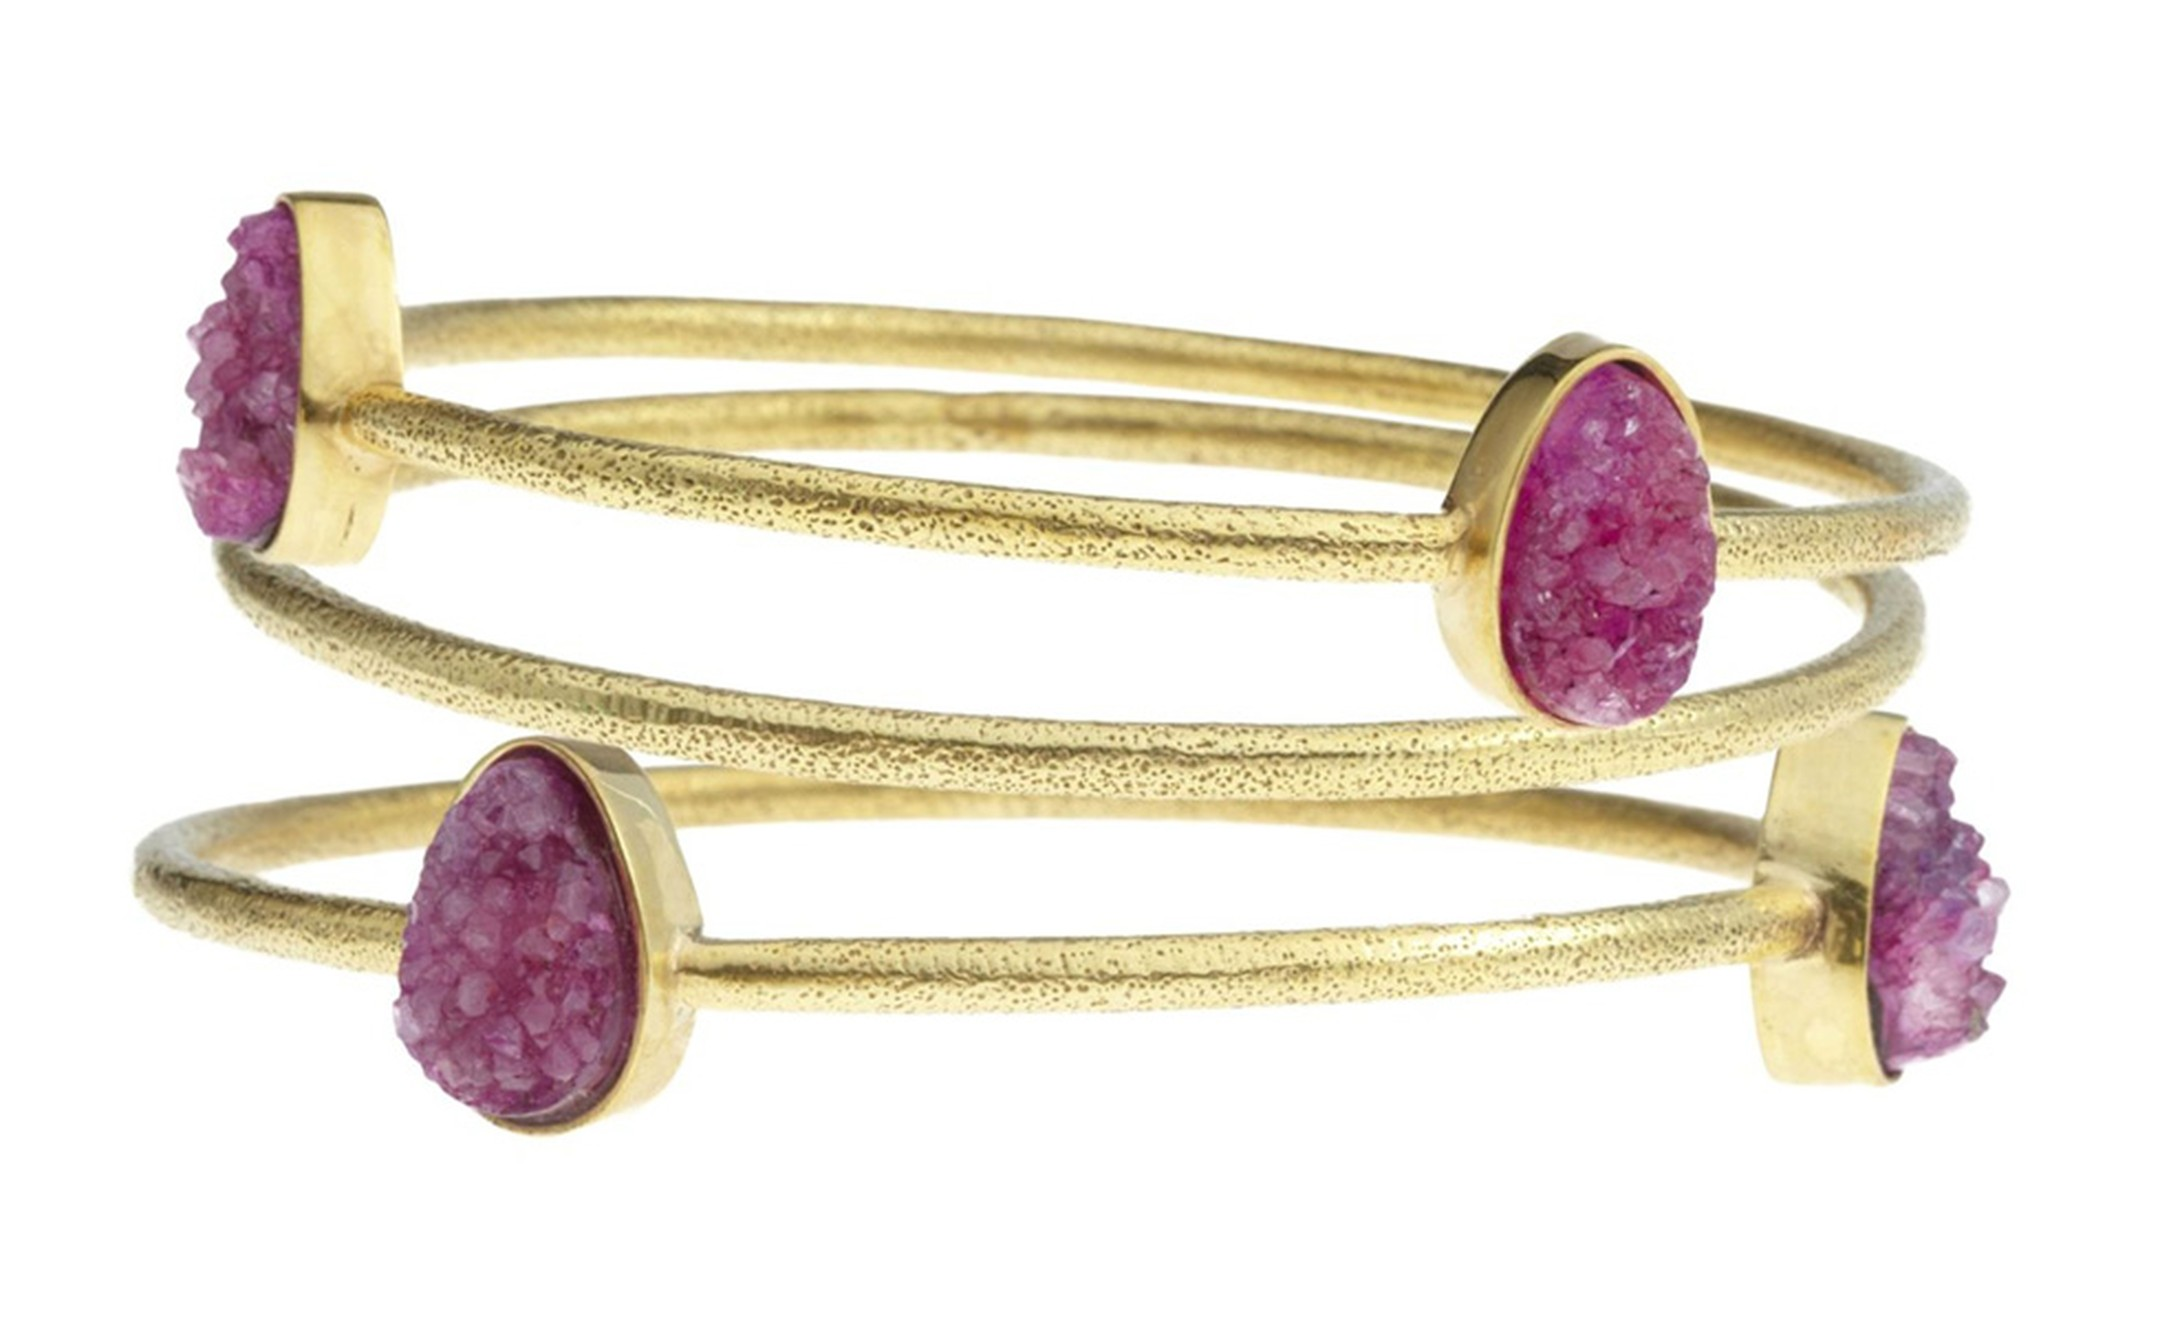 Mary Portas Amethyst bracelet at House of Fraser. £95